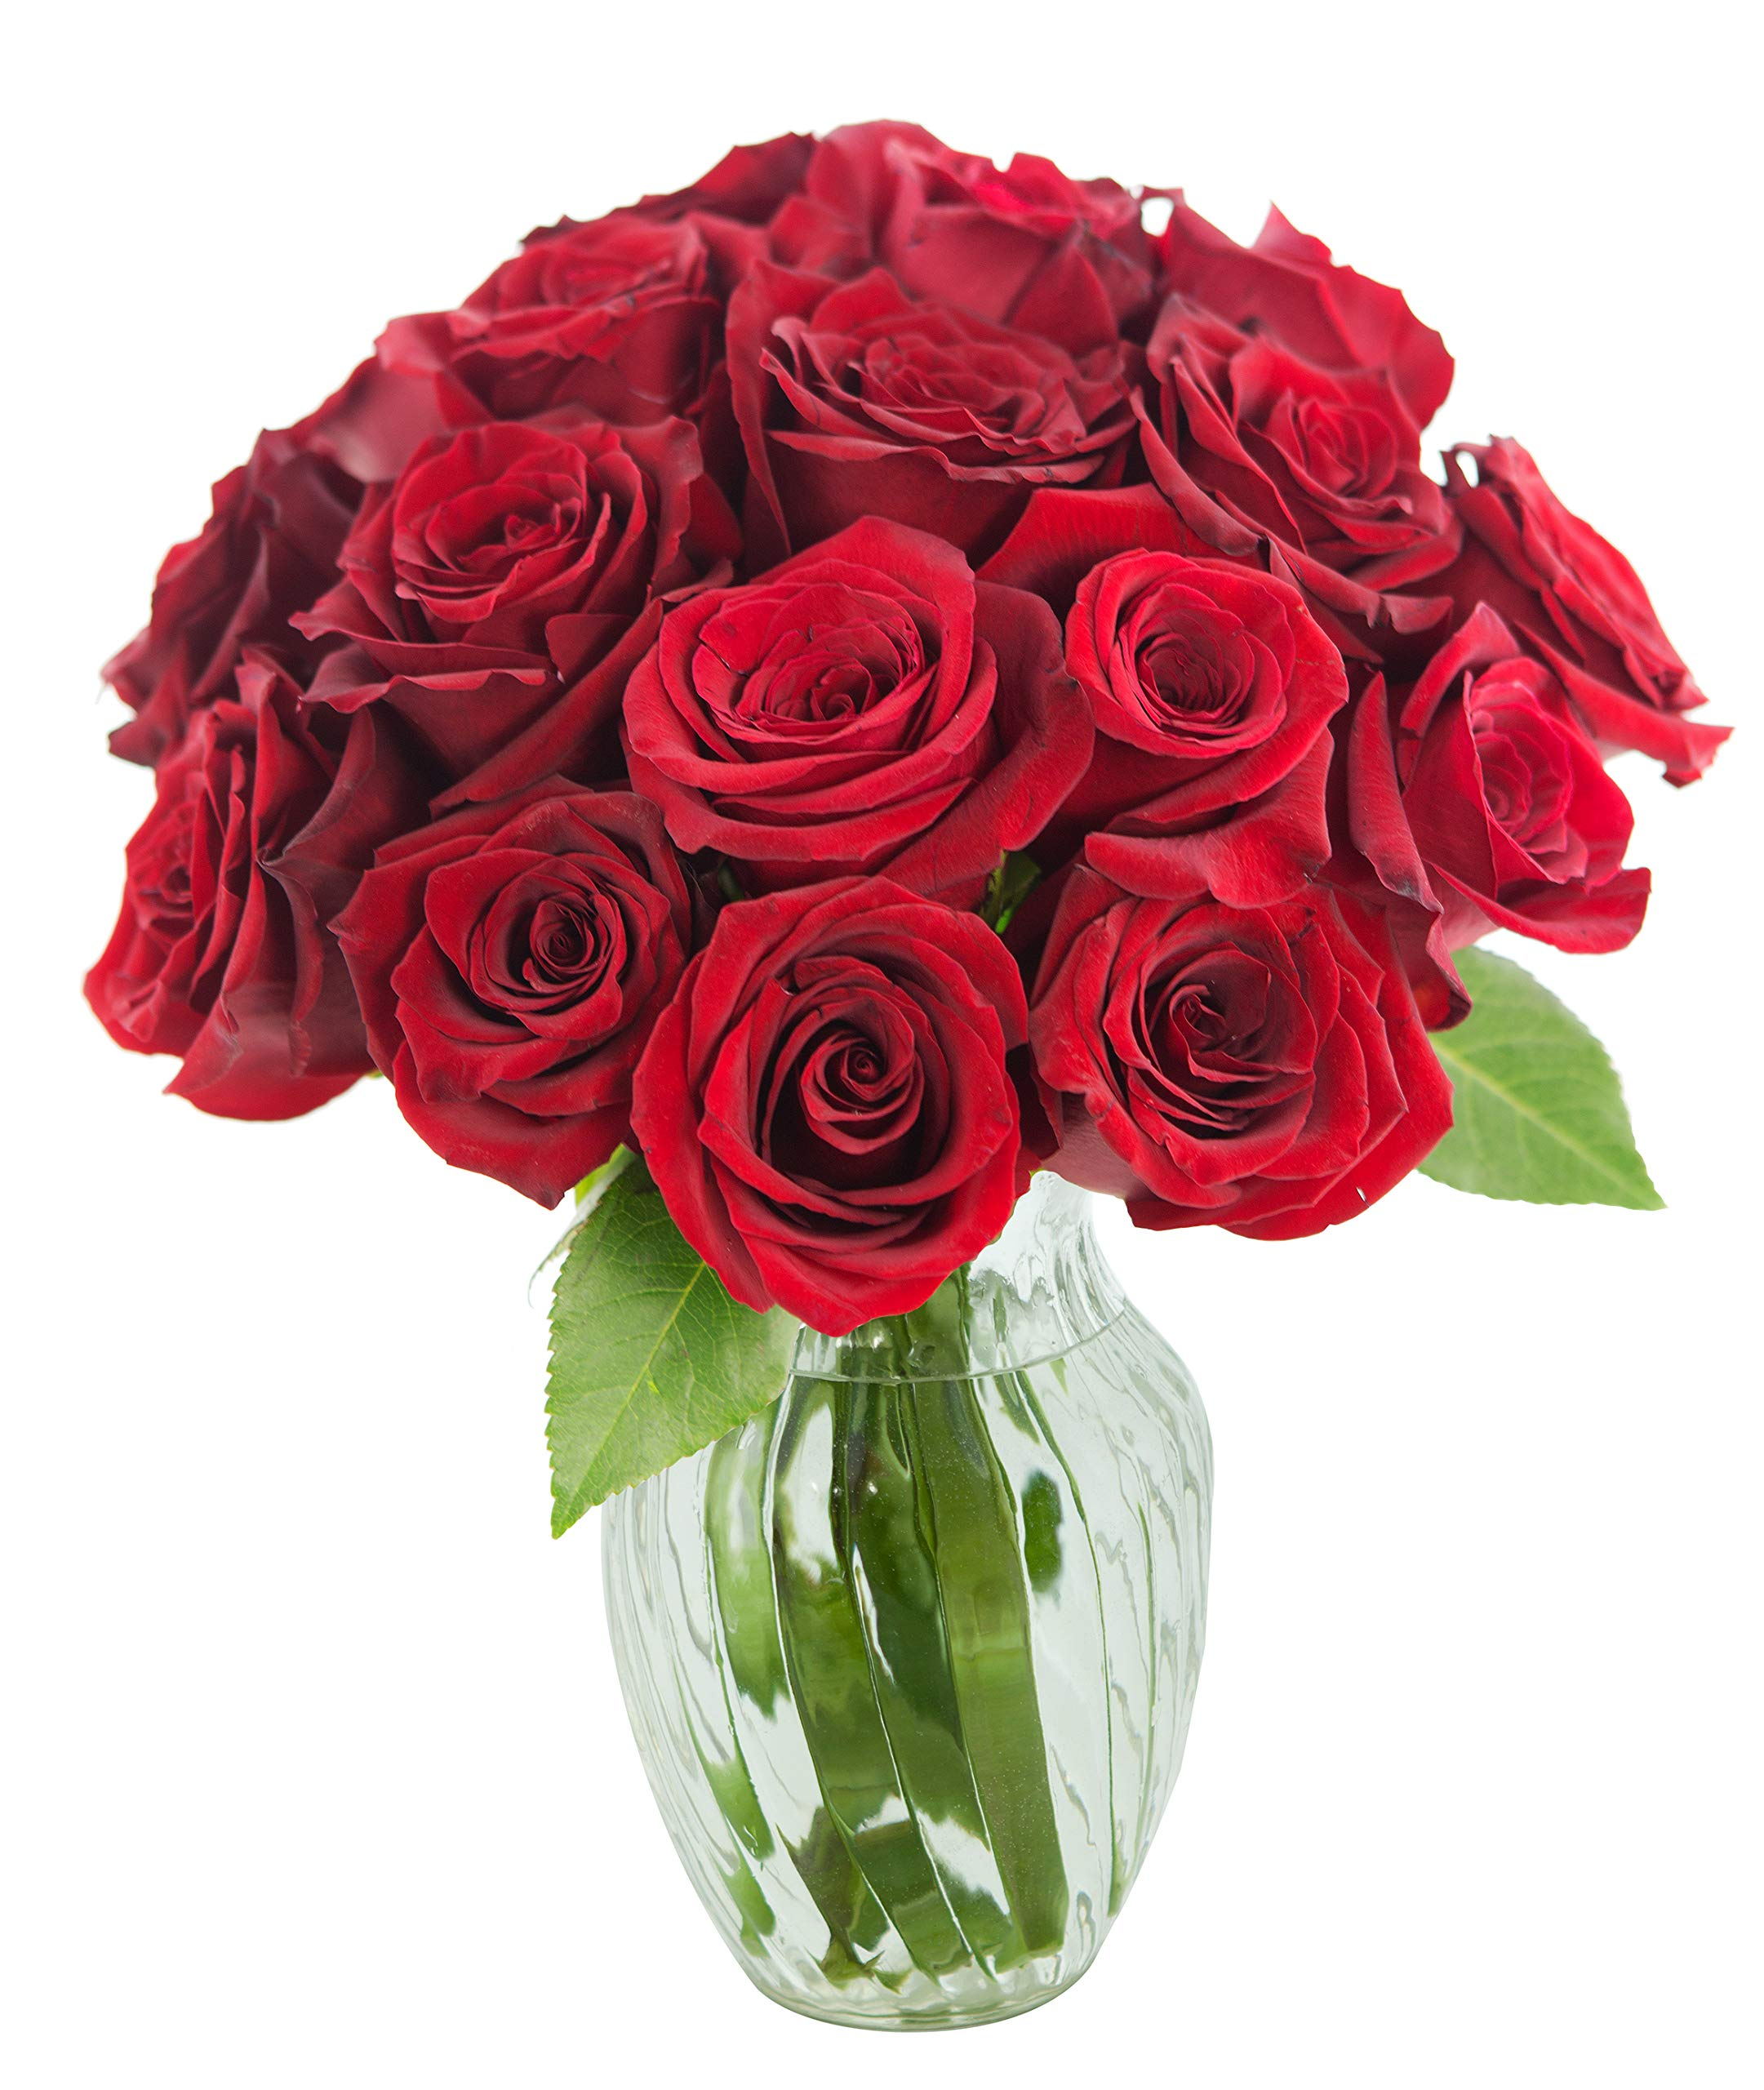 KaBloom The Romantic Classic Bouquet of 18 Fresh Red Roses (Farm-Fresh, Long-Stem) with Vase by KaBloom